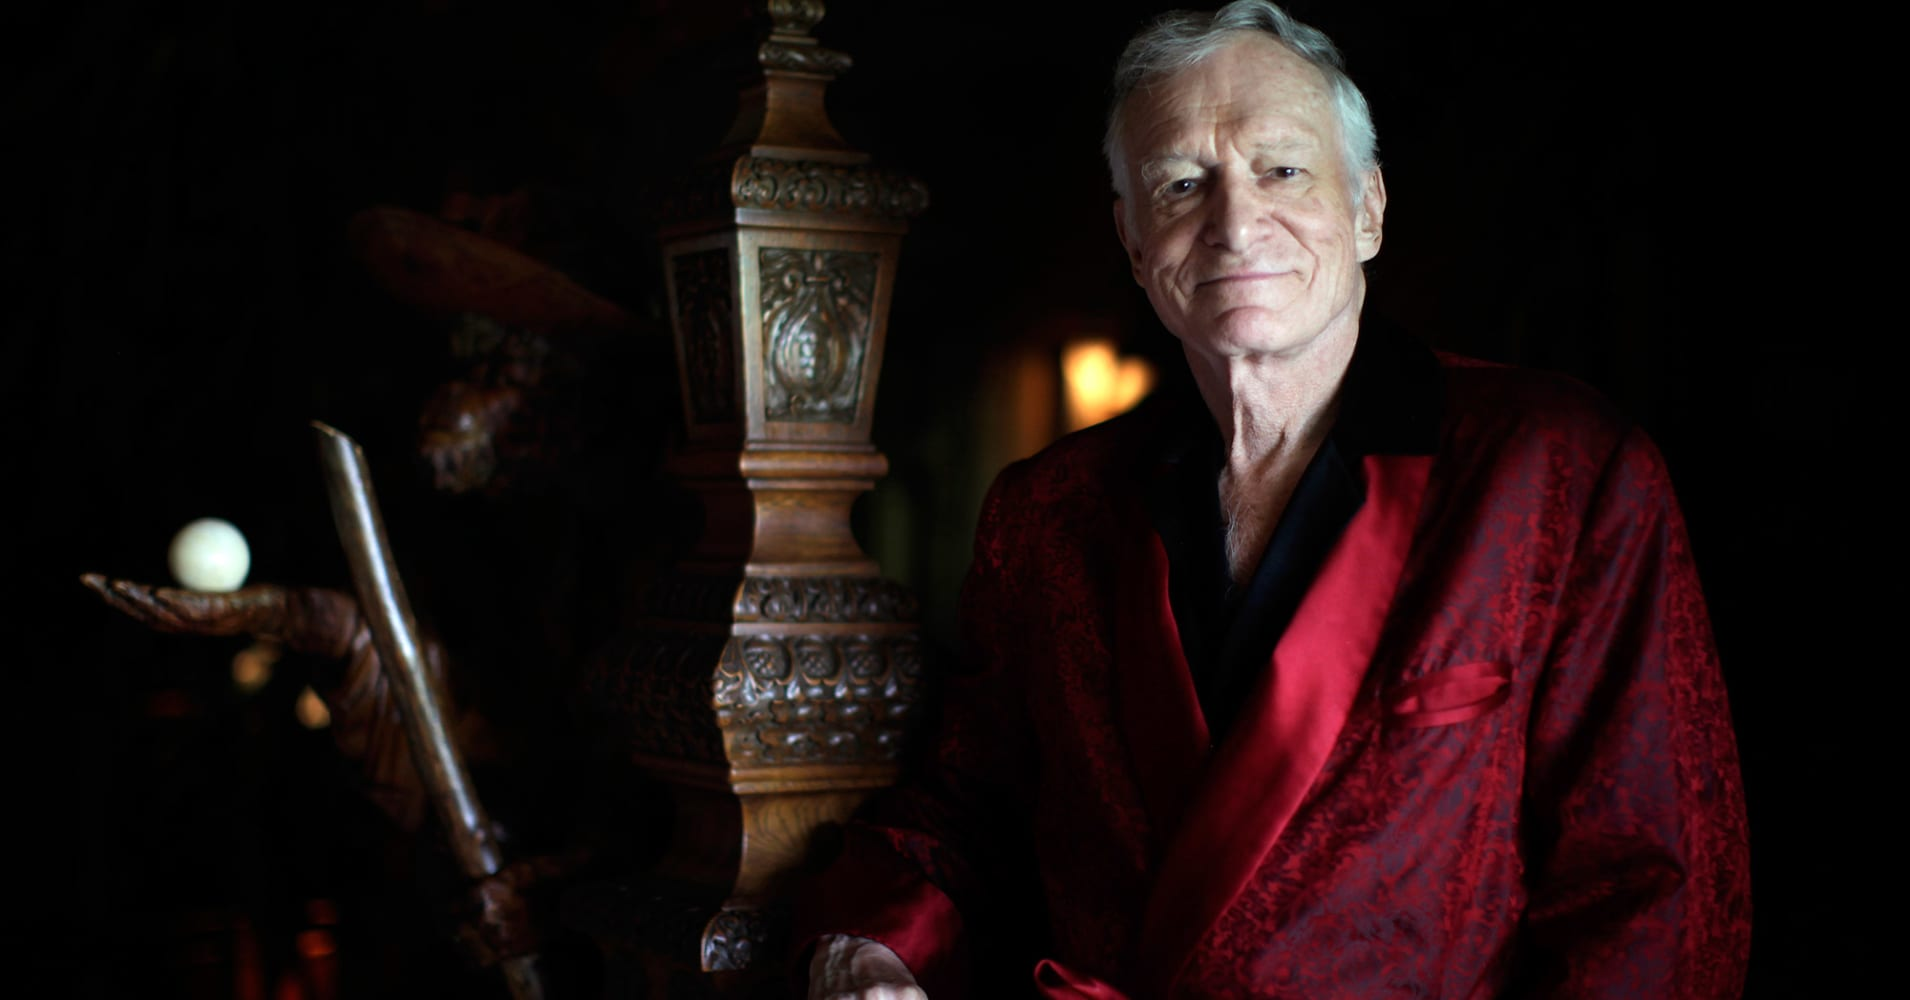 Playboy magazine founder Hugh Hefner poses for a portrait at his Playboy mansion in Los Angeles, California, July 27, 2010.